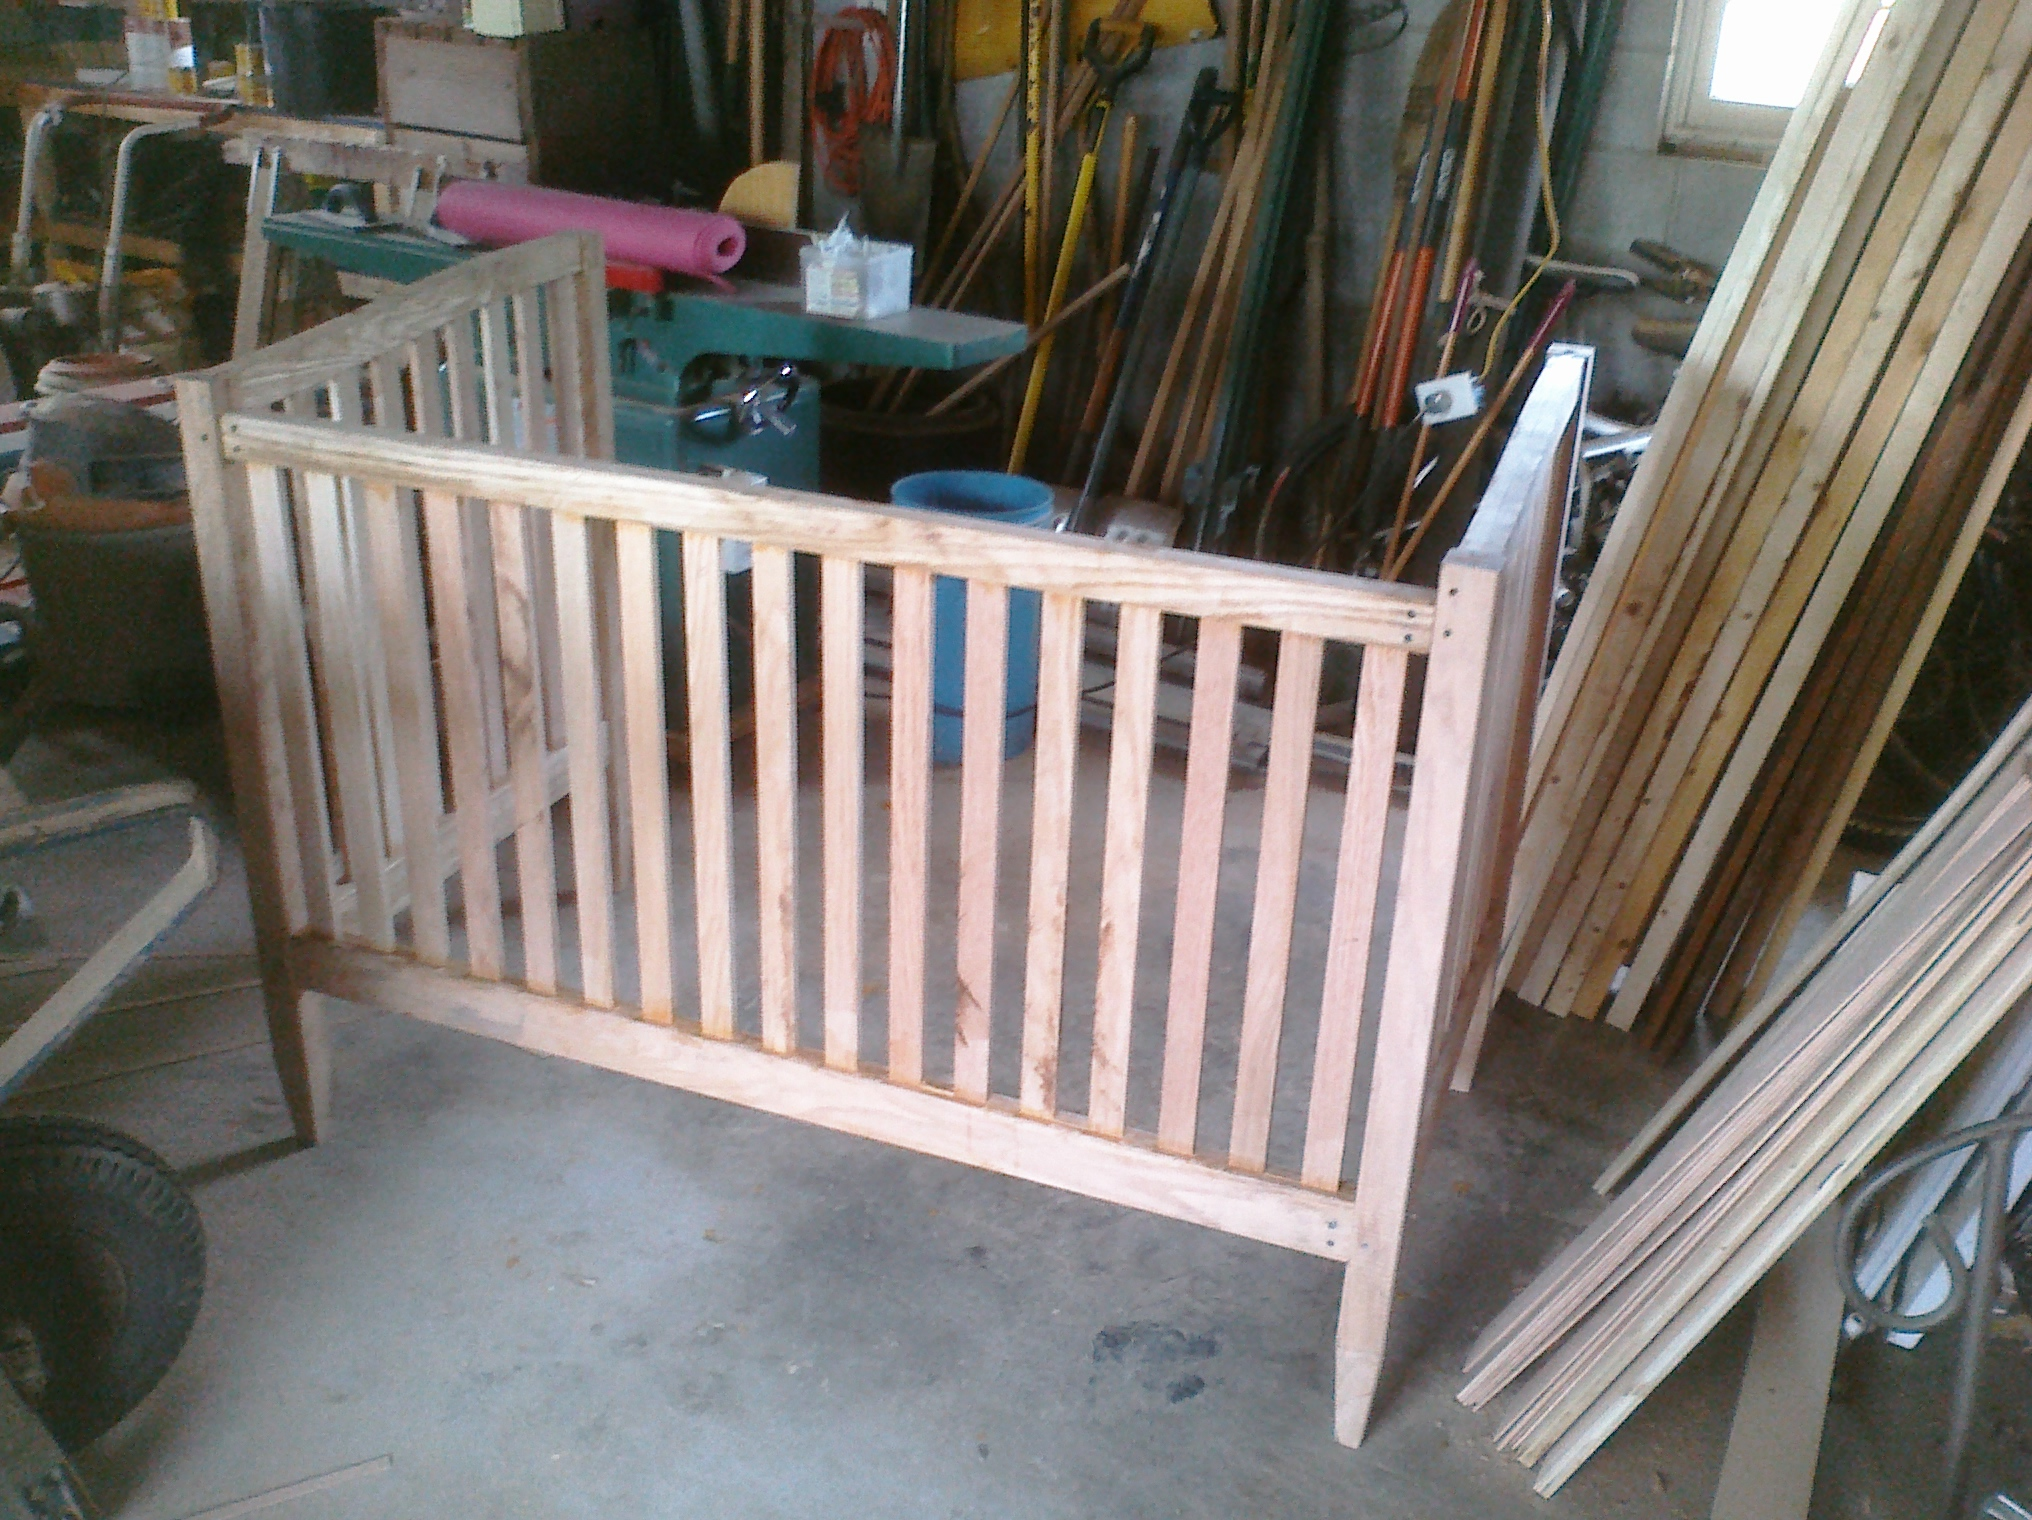 When I found out my niece was on the way, I wanted to make a crib for her. My brother-in-law and his wife showed me a design they liked, and I replicated it in red oak.